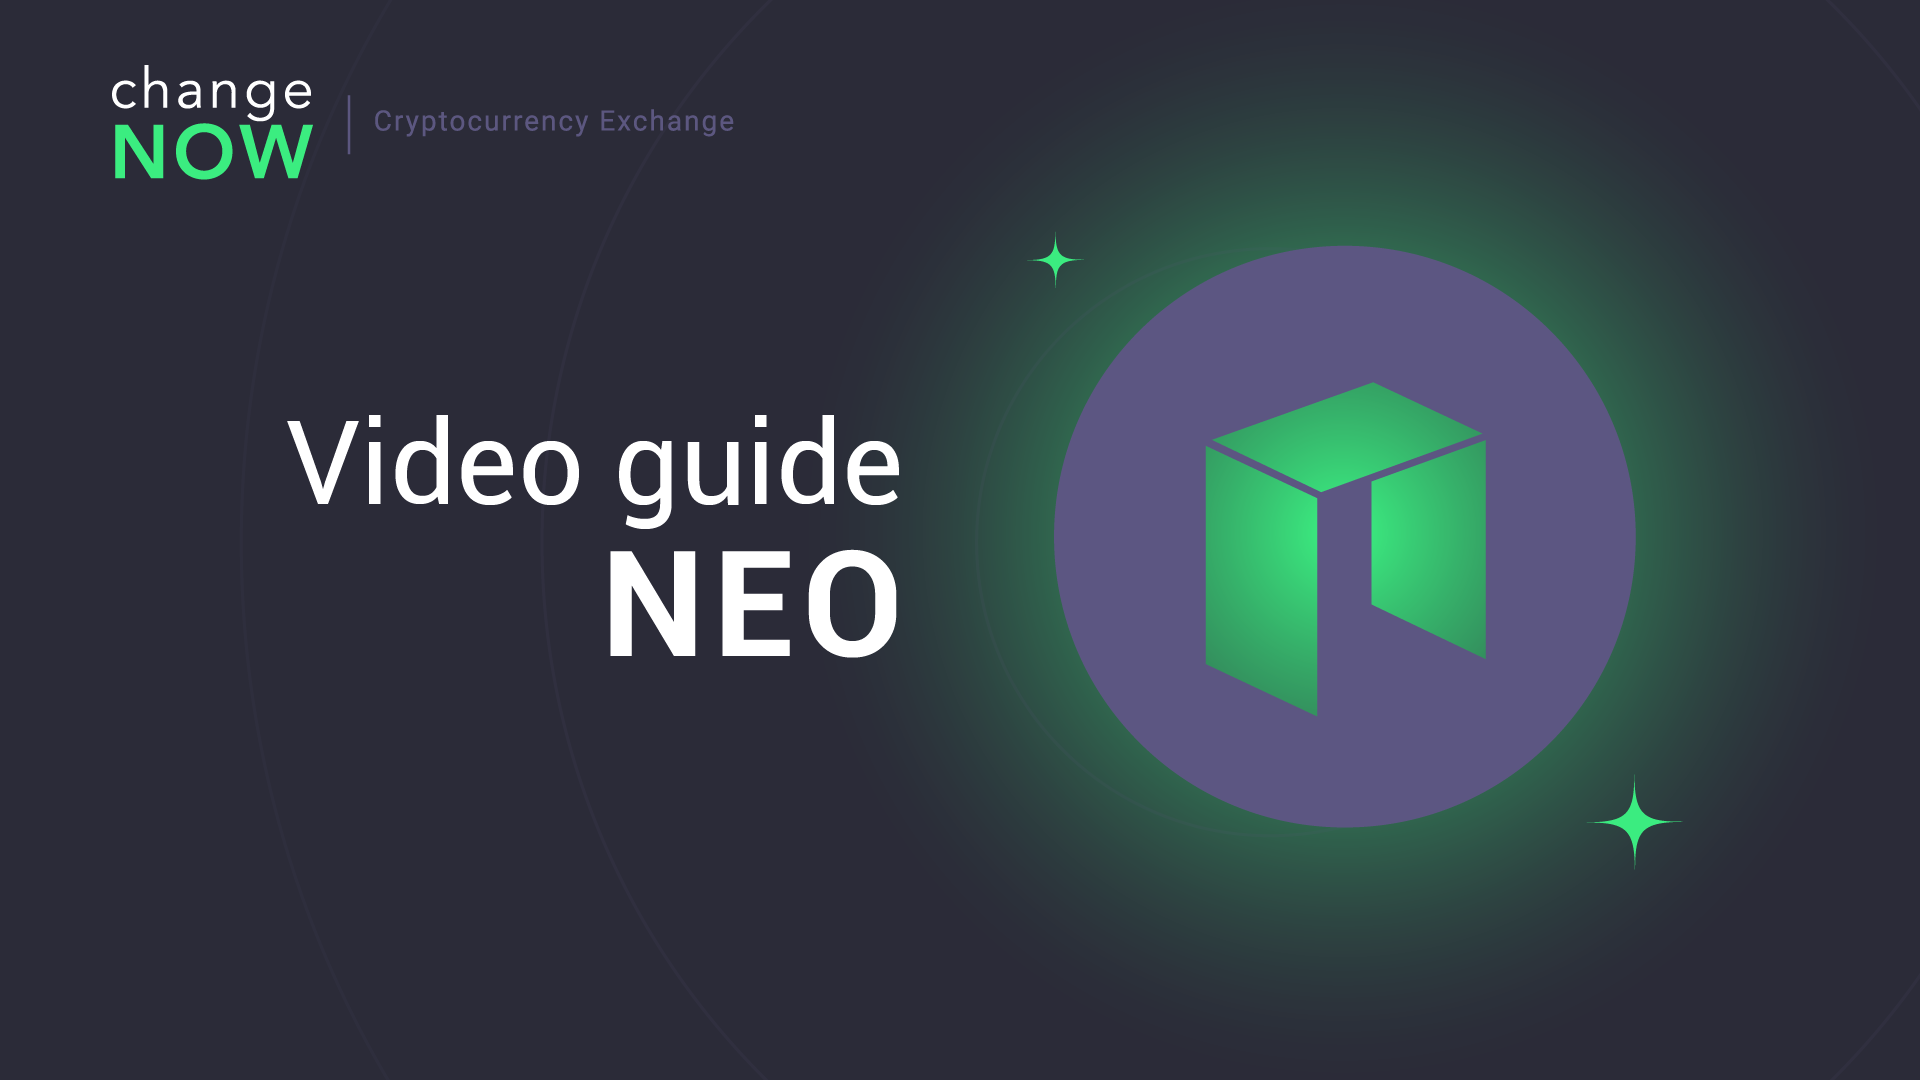 How To Buy NEO on ChangeNOW.io - Quick and Easy Swaps with More than 150 Cryptos [GUIDE]